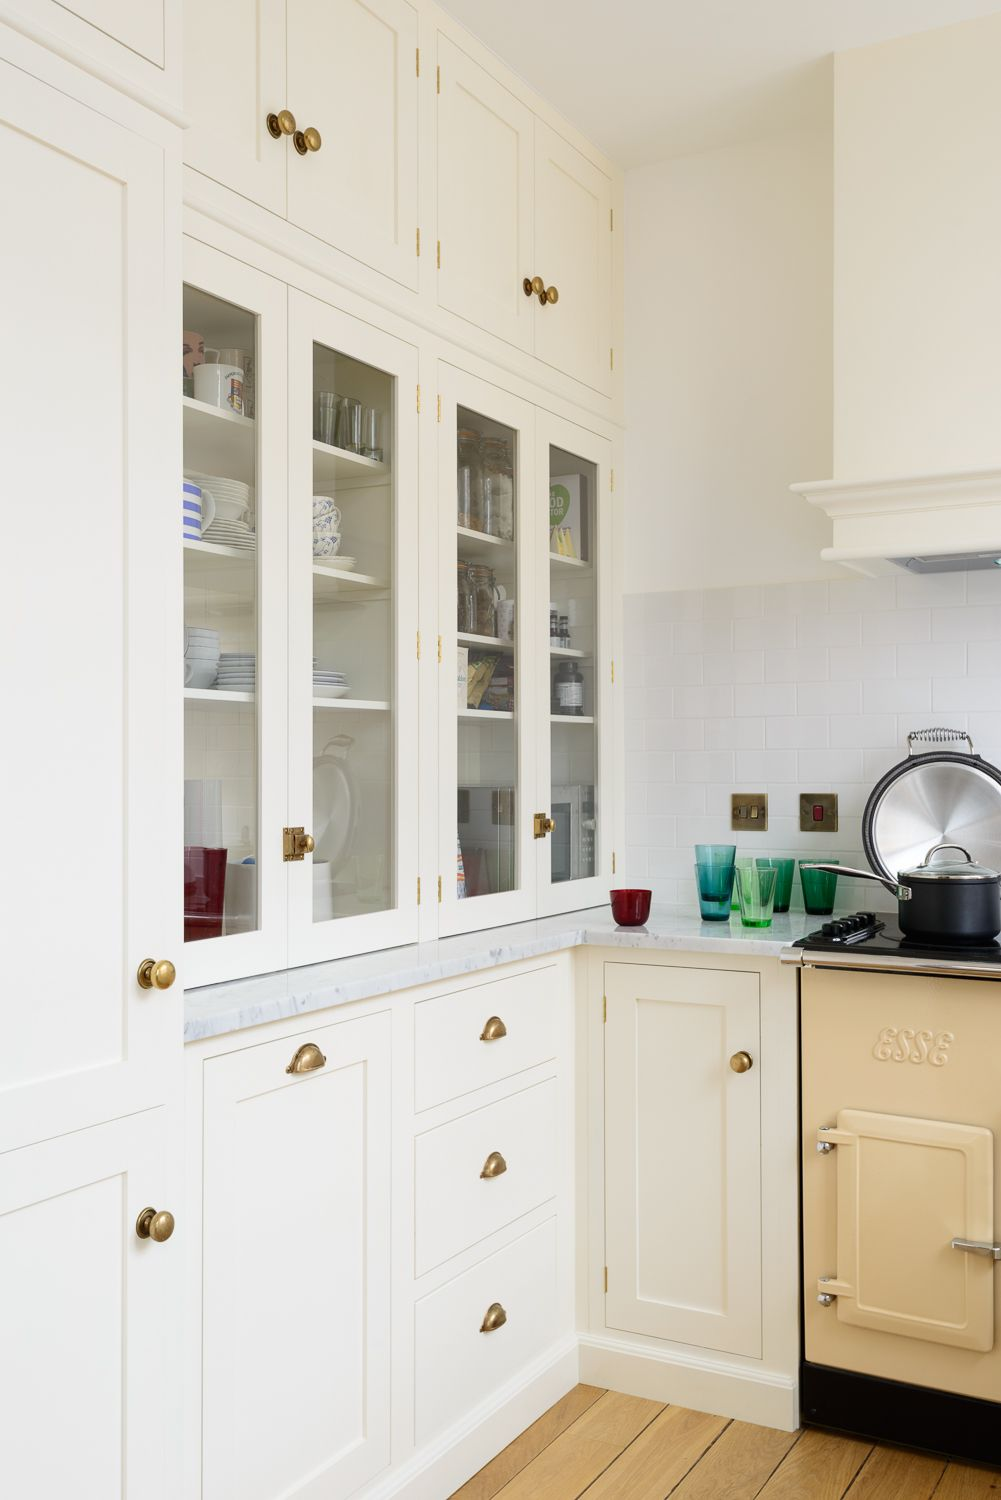 This beautiful wall of cabinets incorporates the fridge freezer and ...